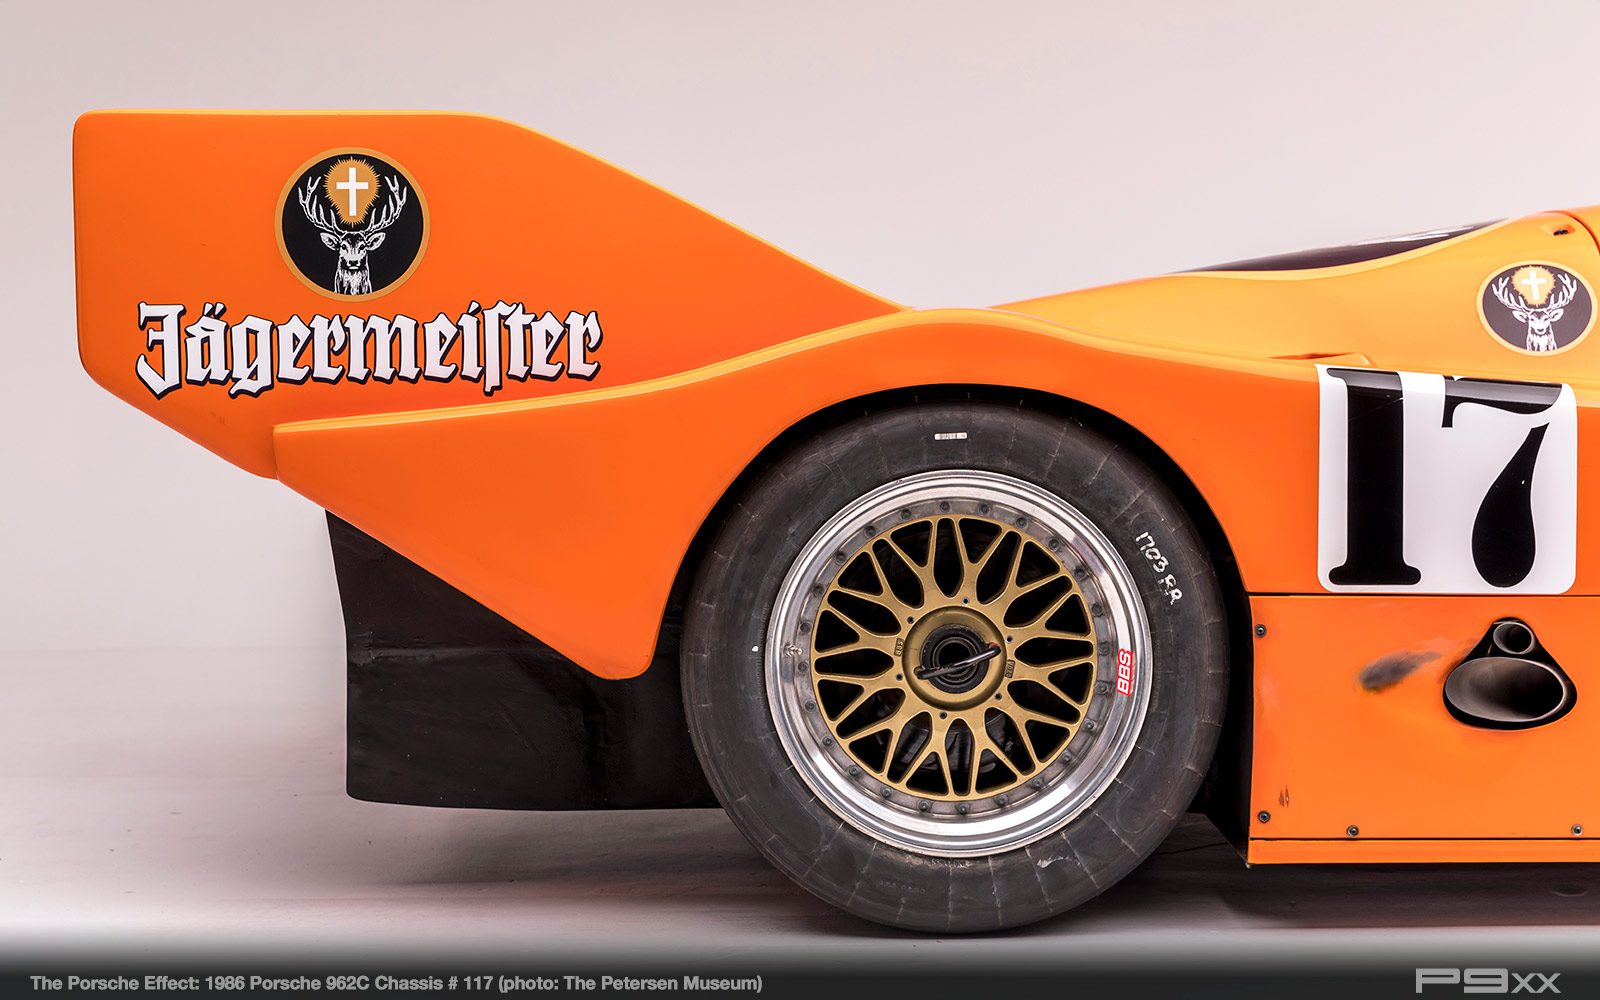 1986-Jagermeister-962C-Chassis-117-Petersen-Automotive-Museum-The-Porsche-Effect-441